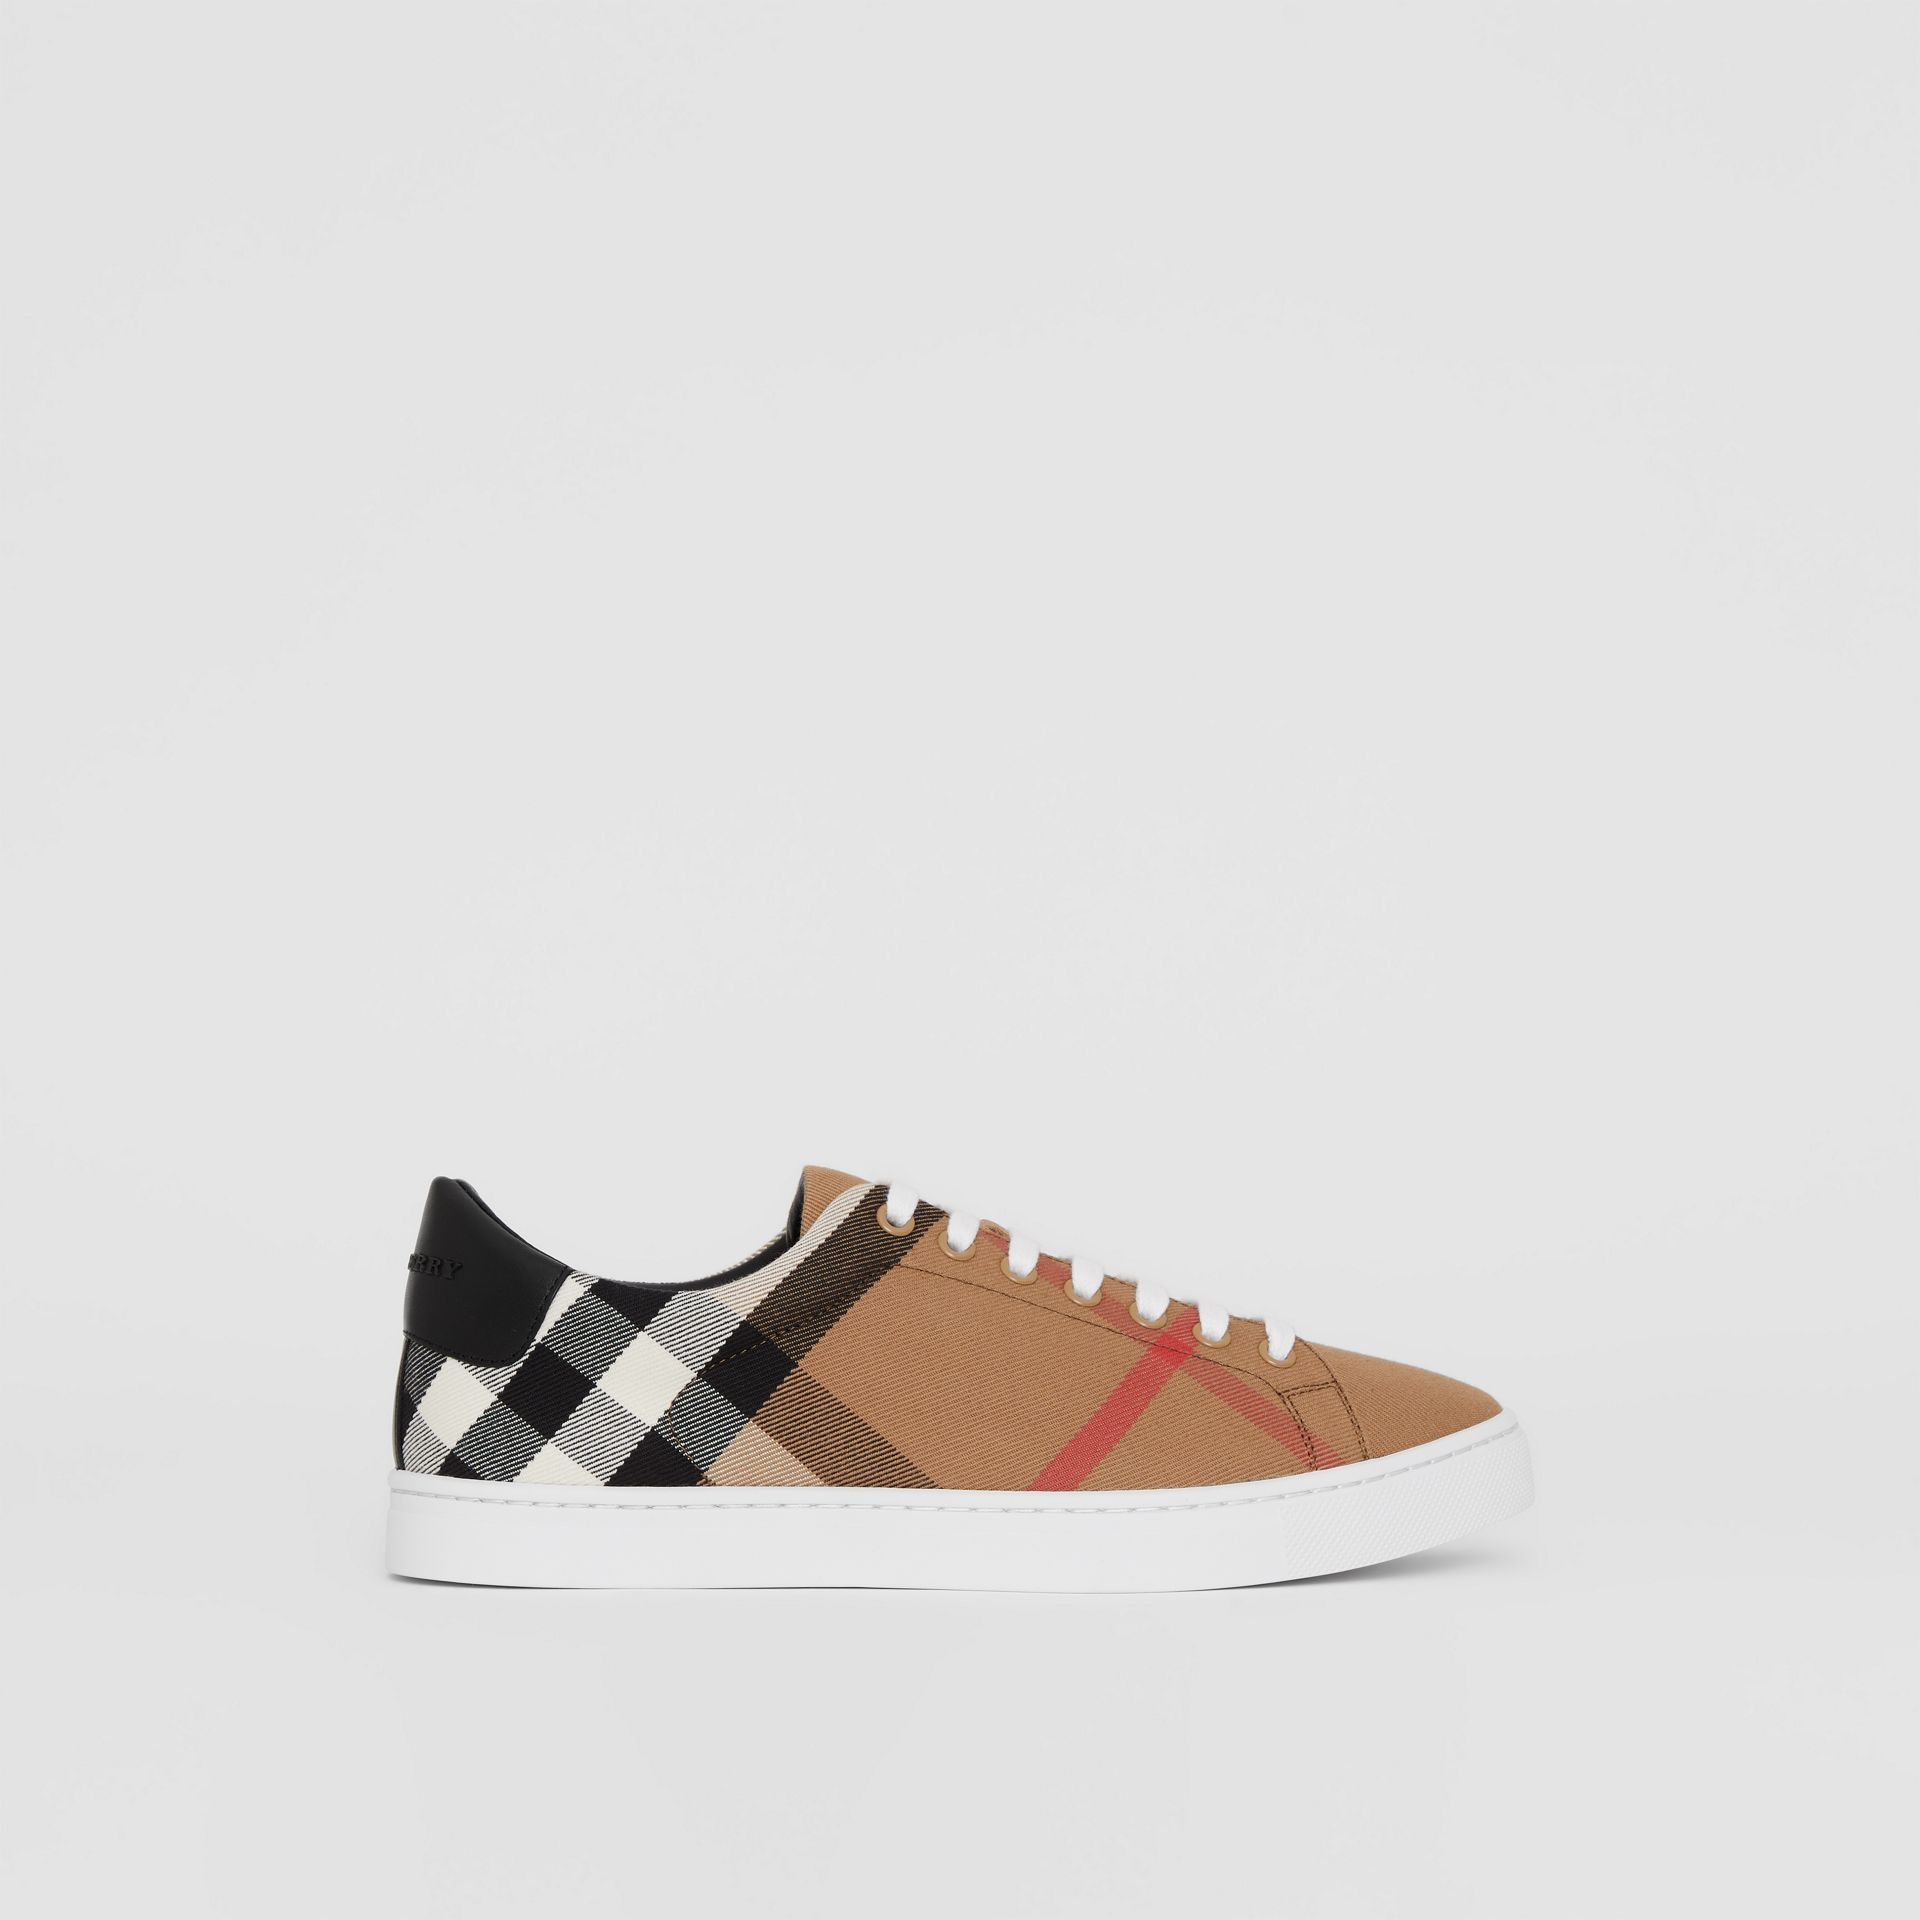 House Check and Leather Sneakers in Check/black - Men | Burberry - gallery image 4